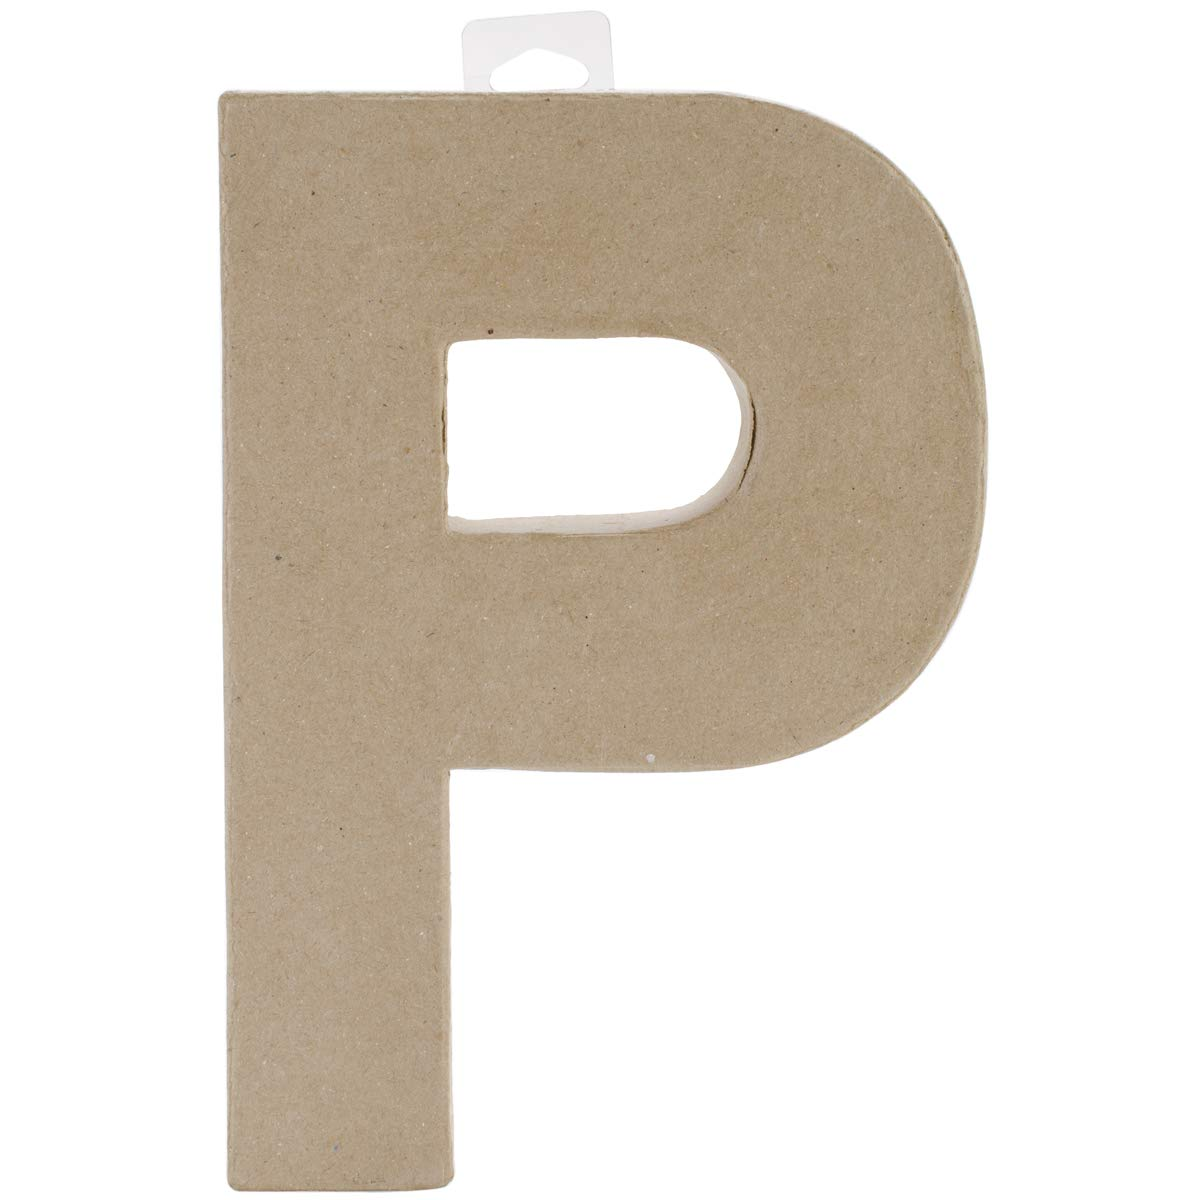 Darice Paper Mache Letter P 8 X 5.5 Inches (8 Pack)